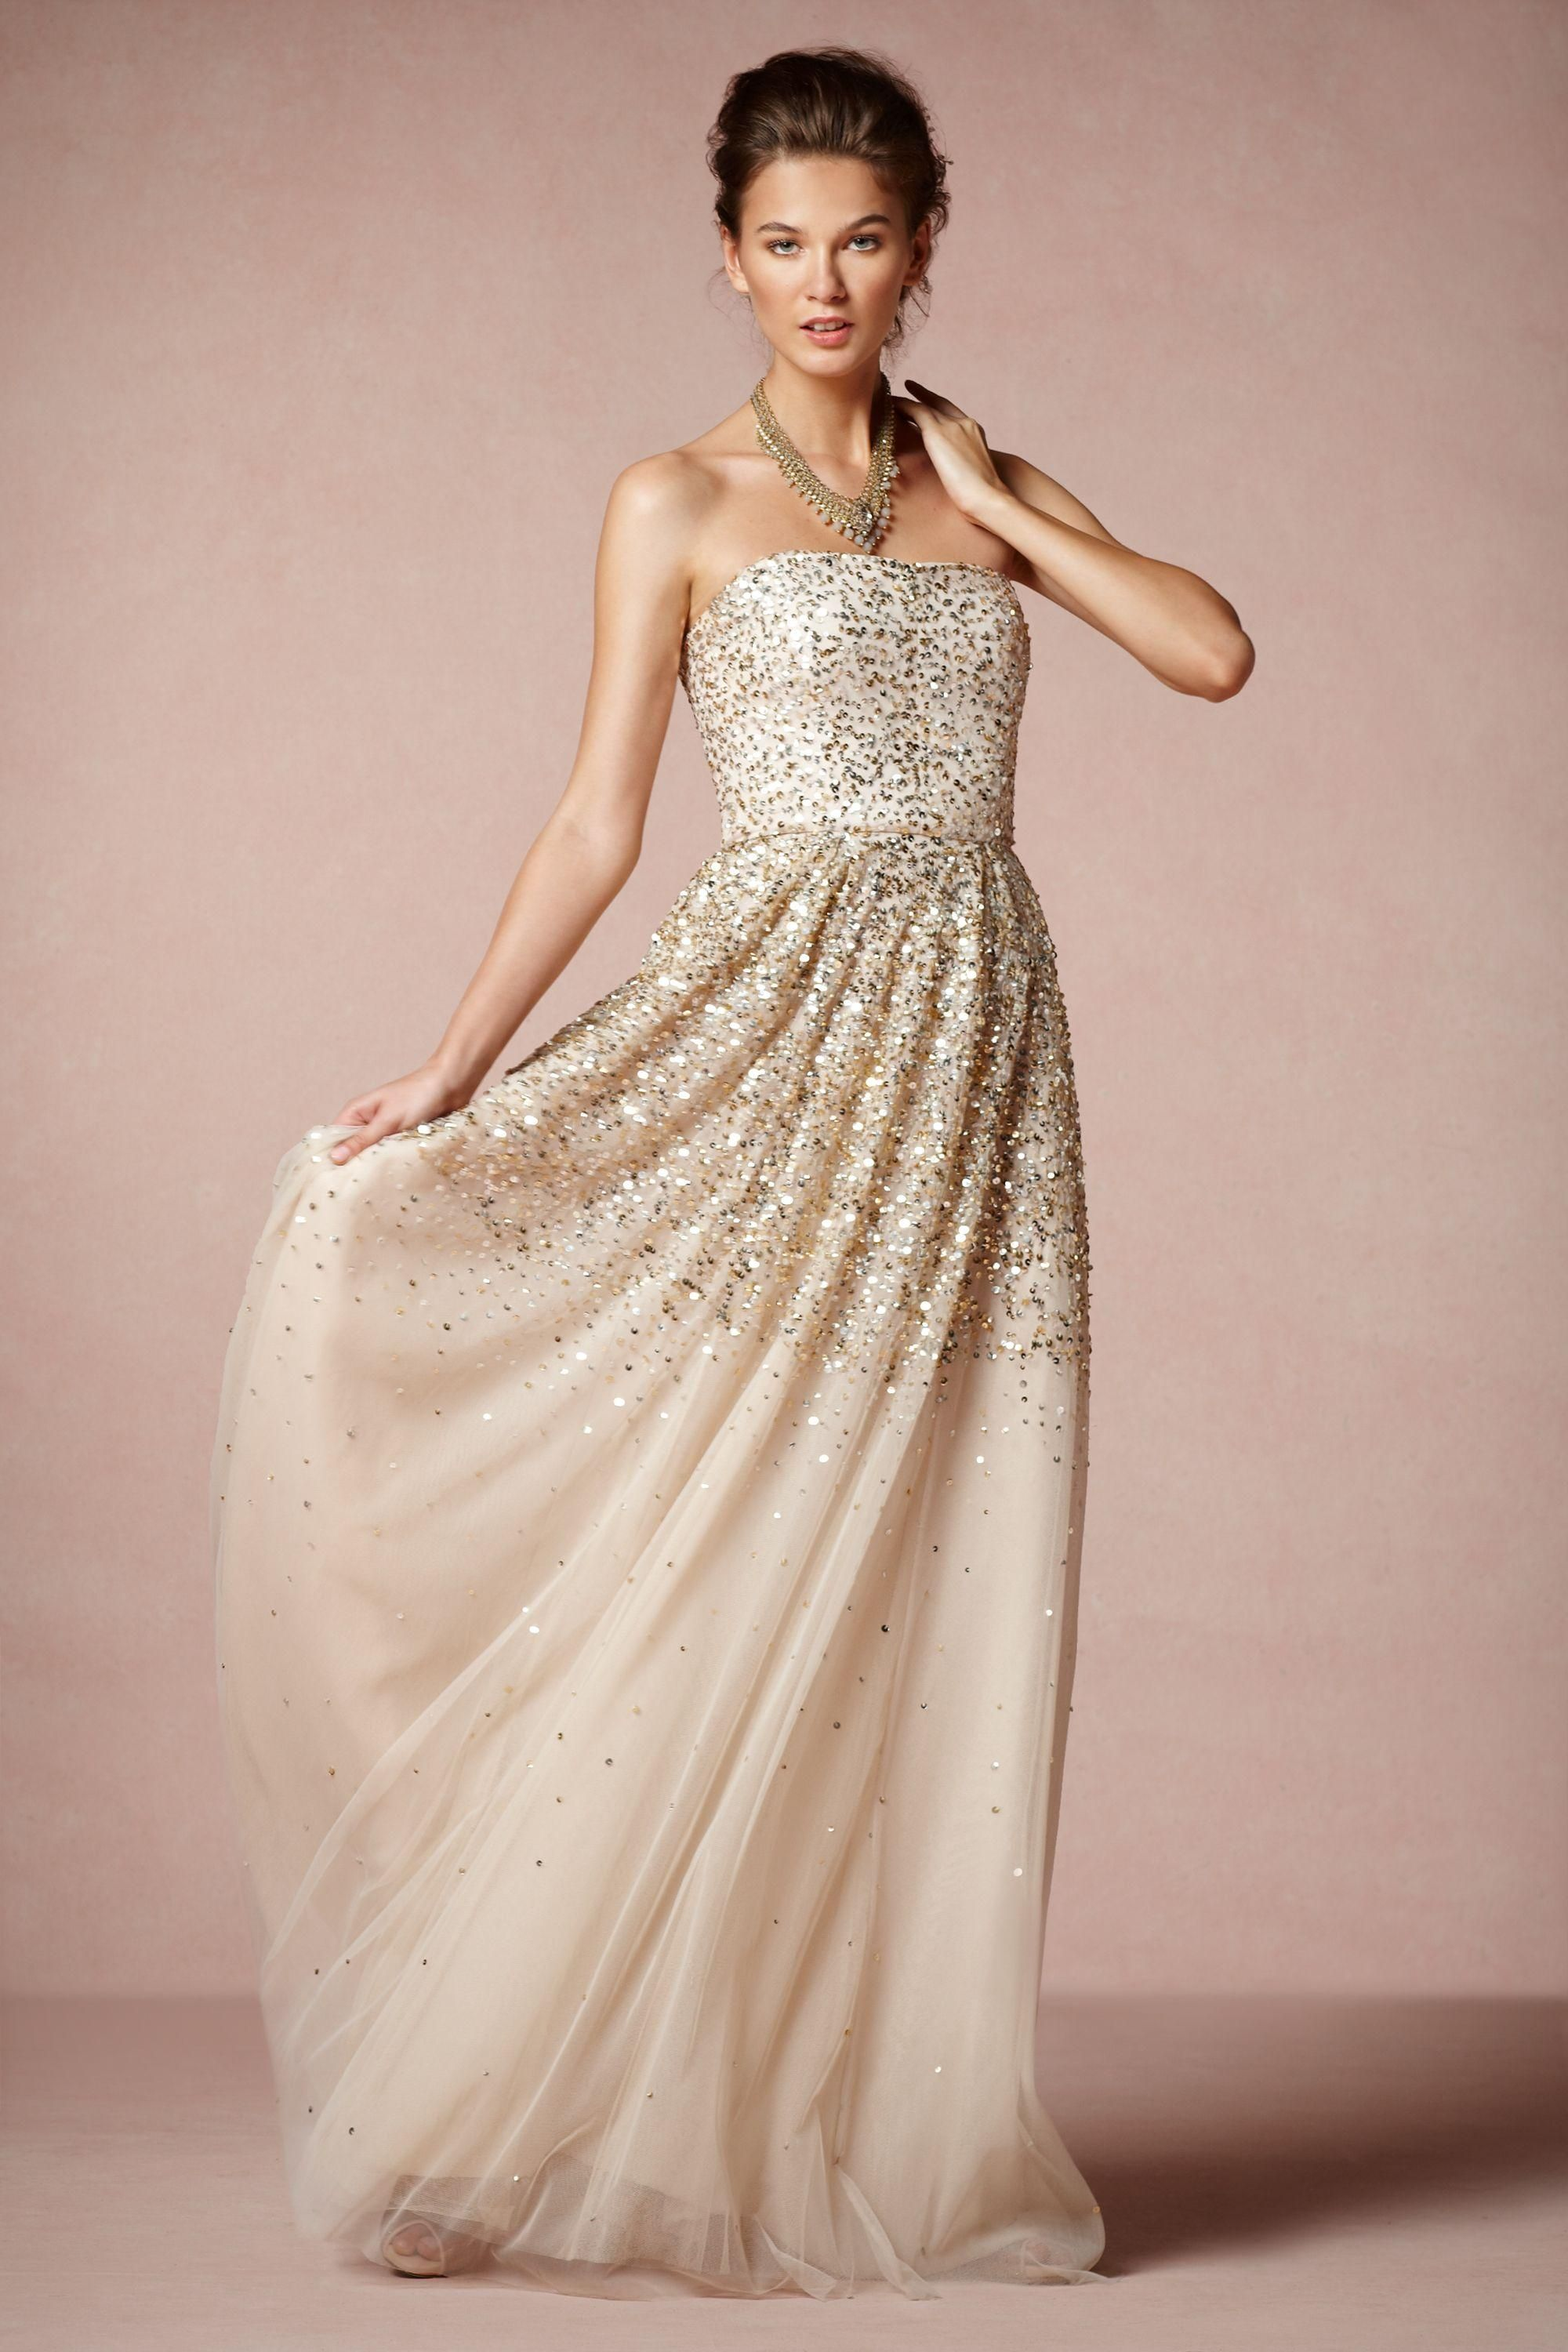 Gorgeous gown in champagne prom dresses pinterest gowns